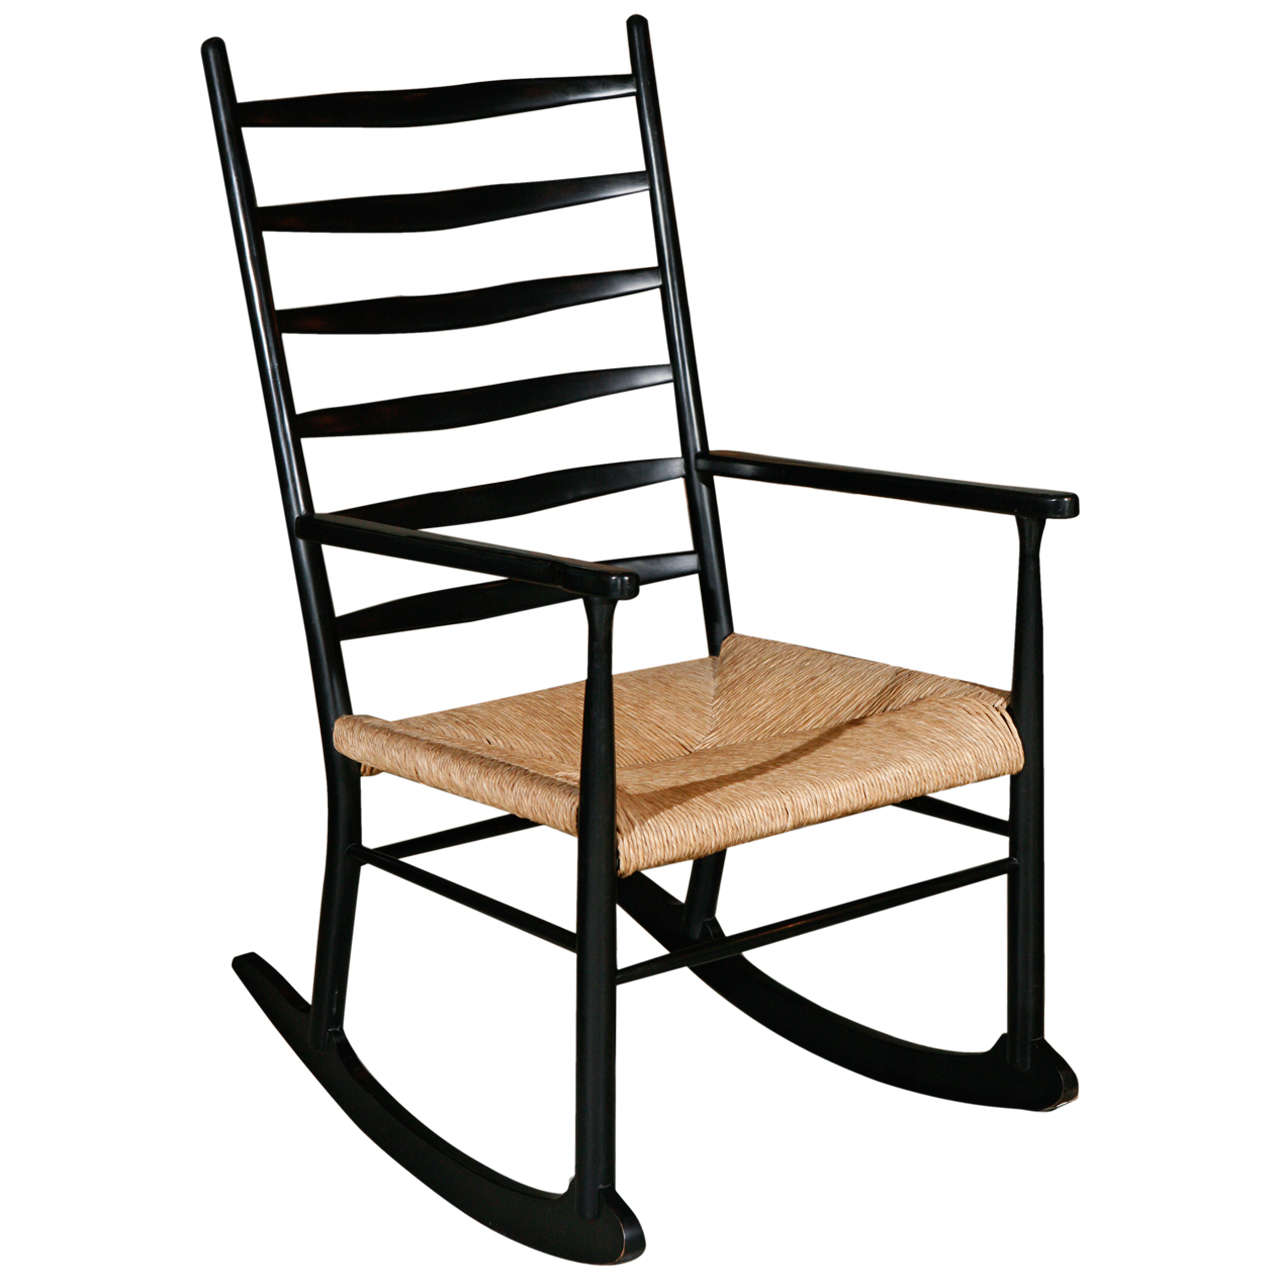 Rocking Chair In Manner Of Gio Ponti 1